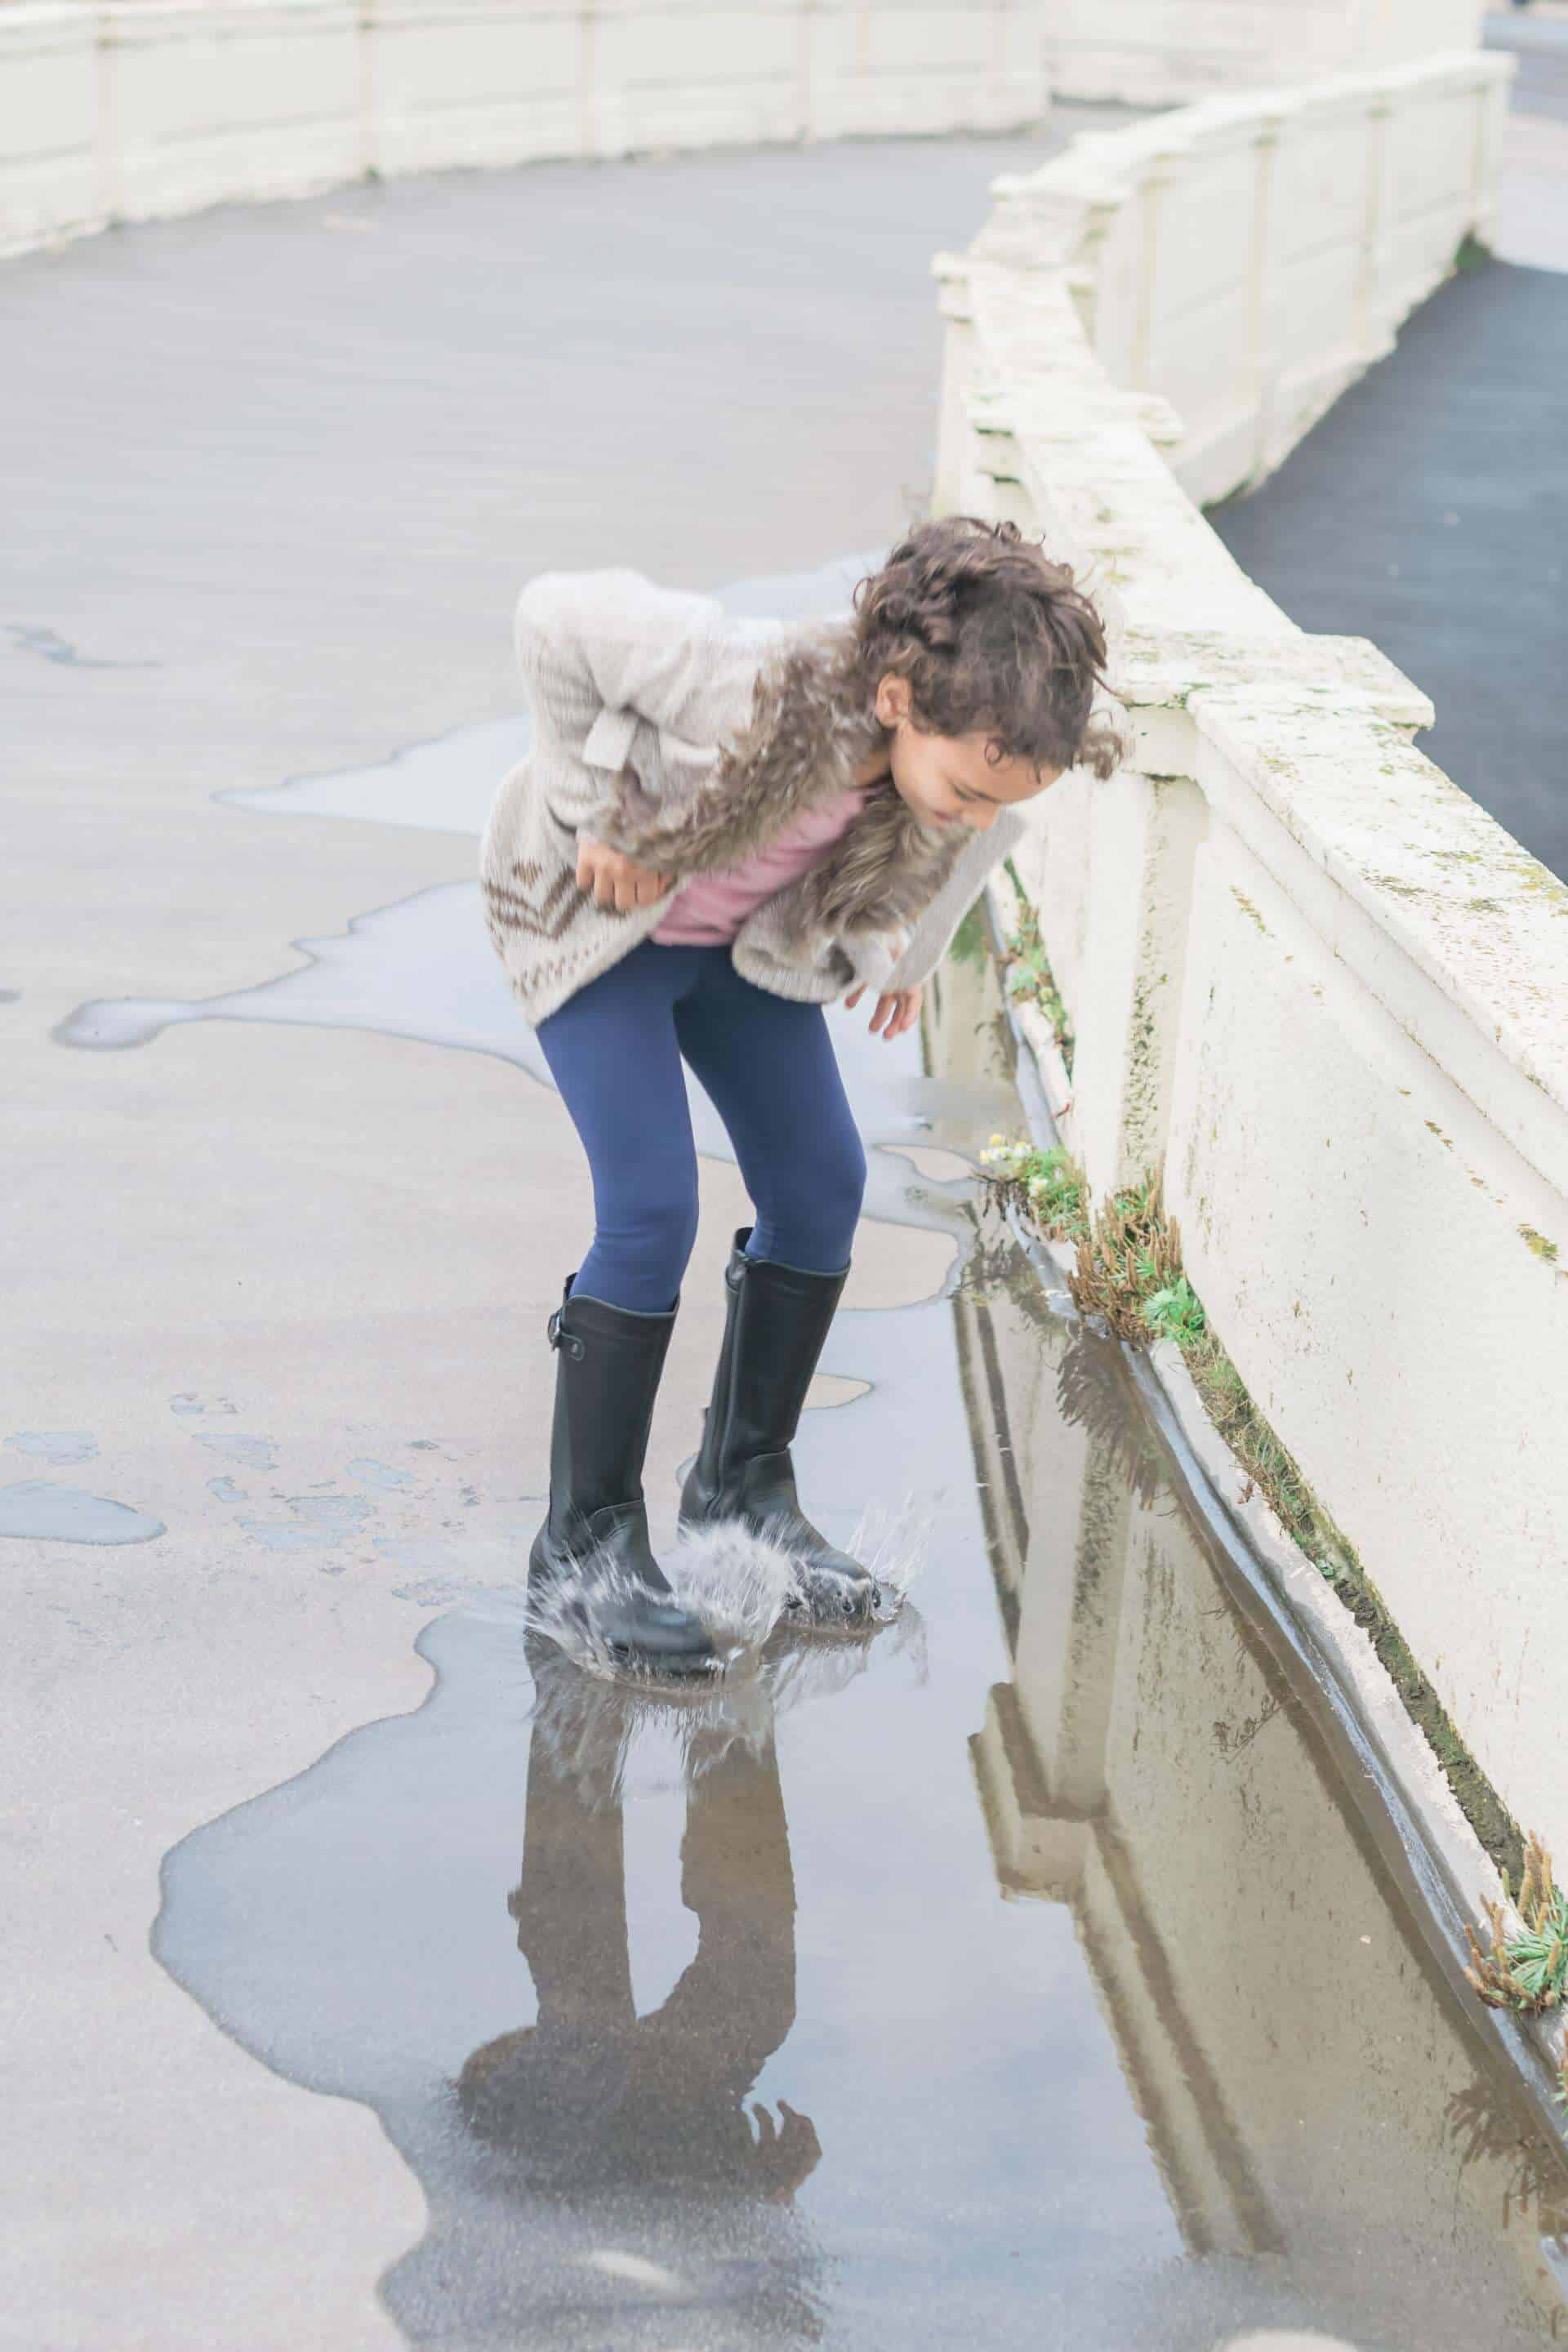 splashing in a puddle